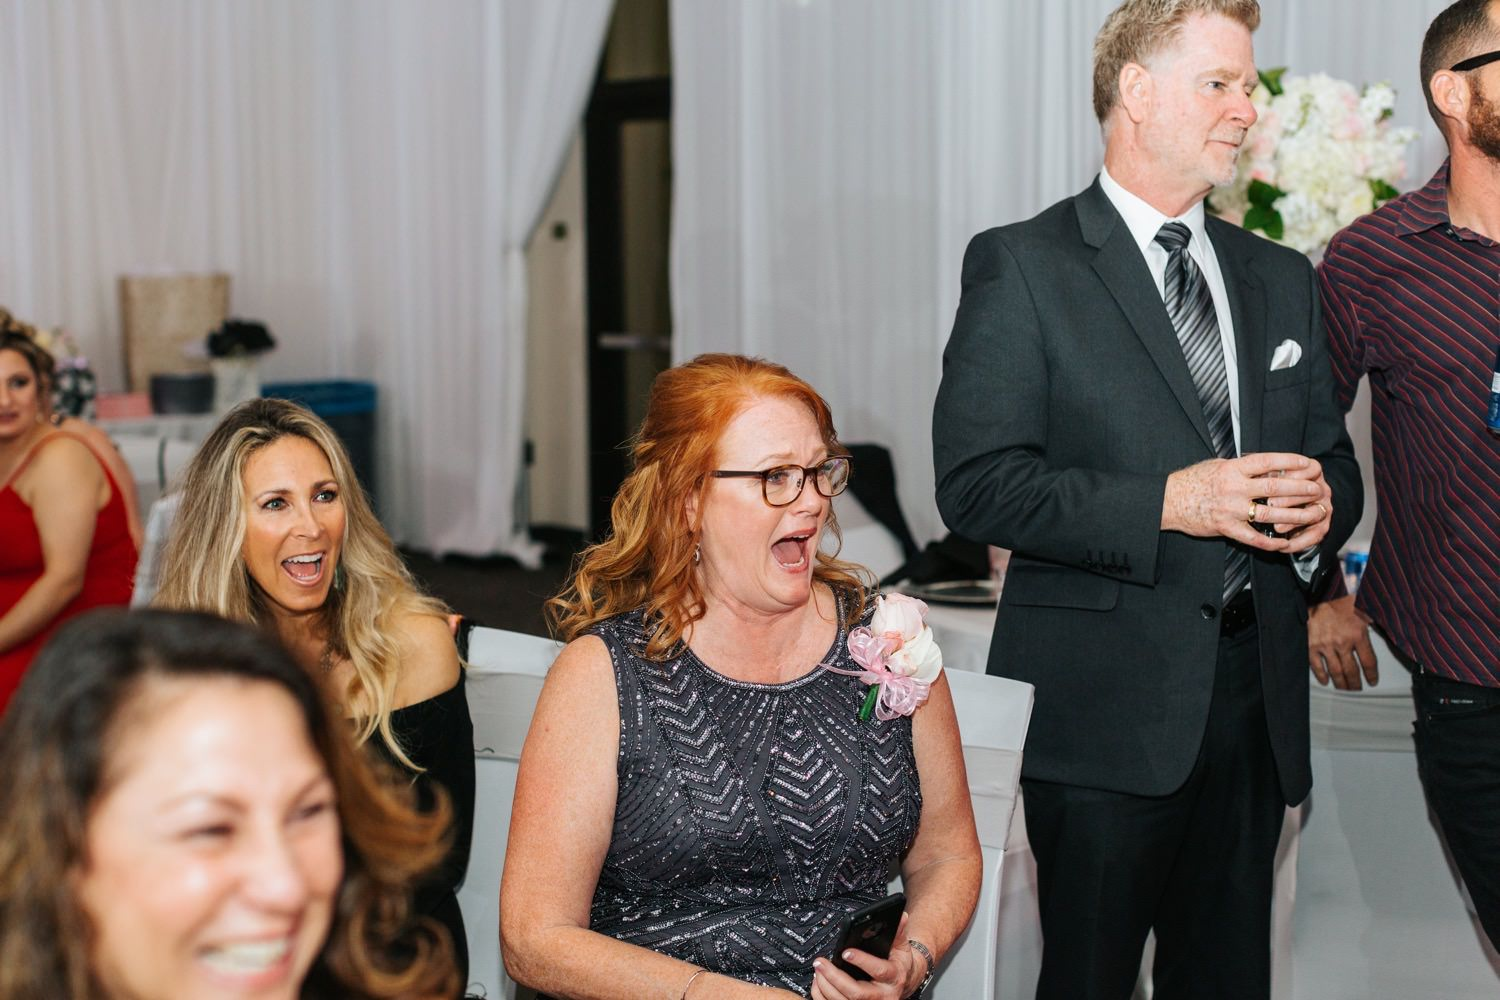 Mom's reaction to bride's surprise dance with her dad